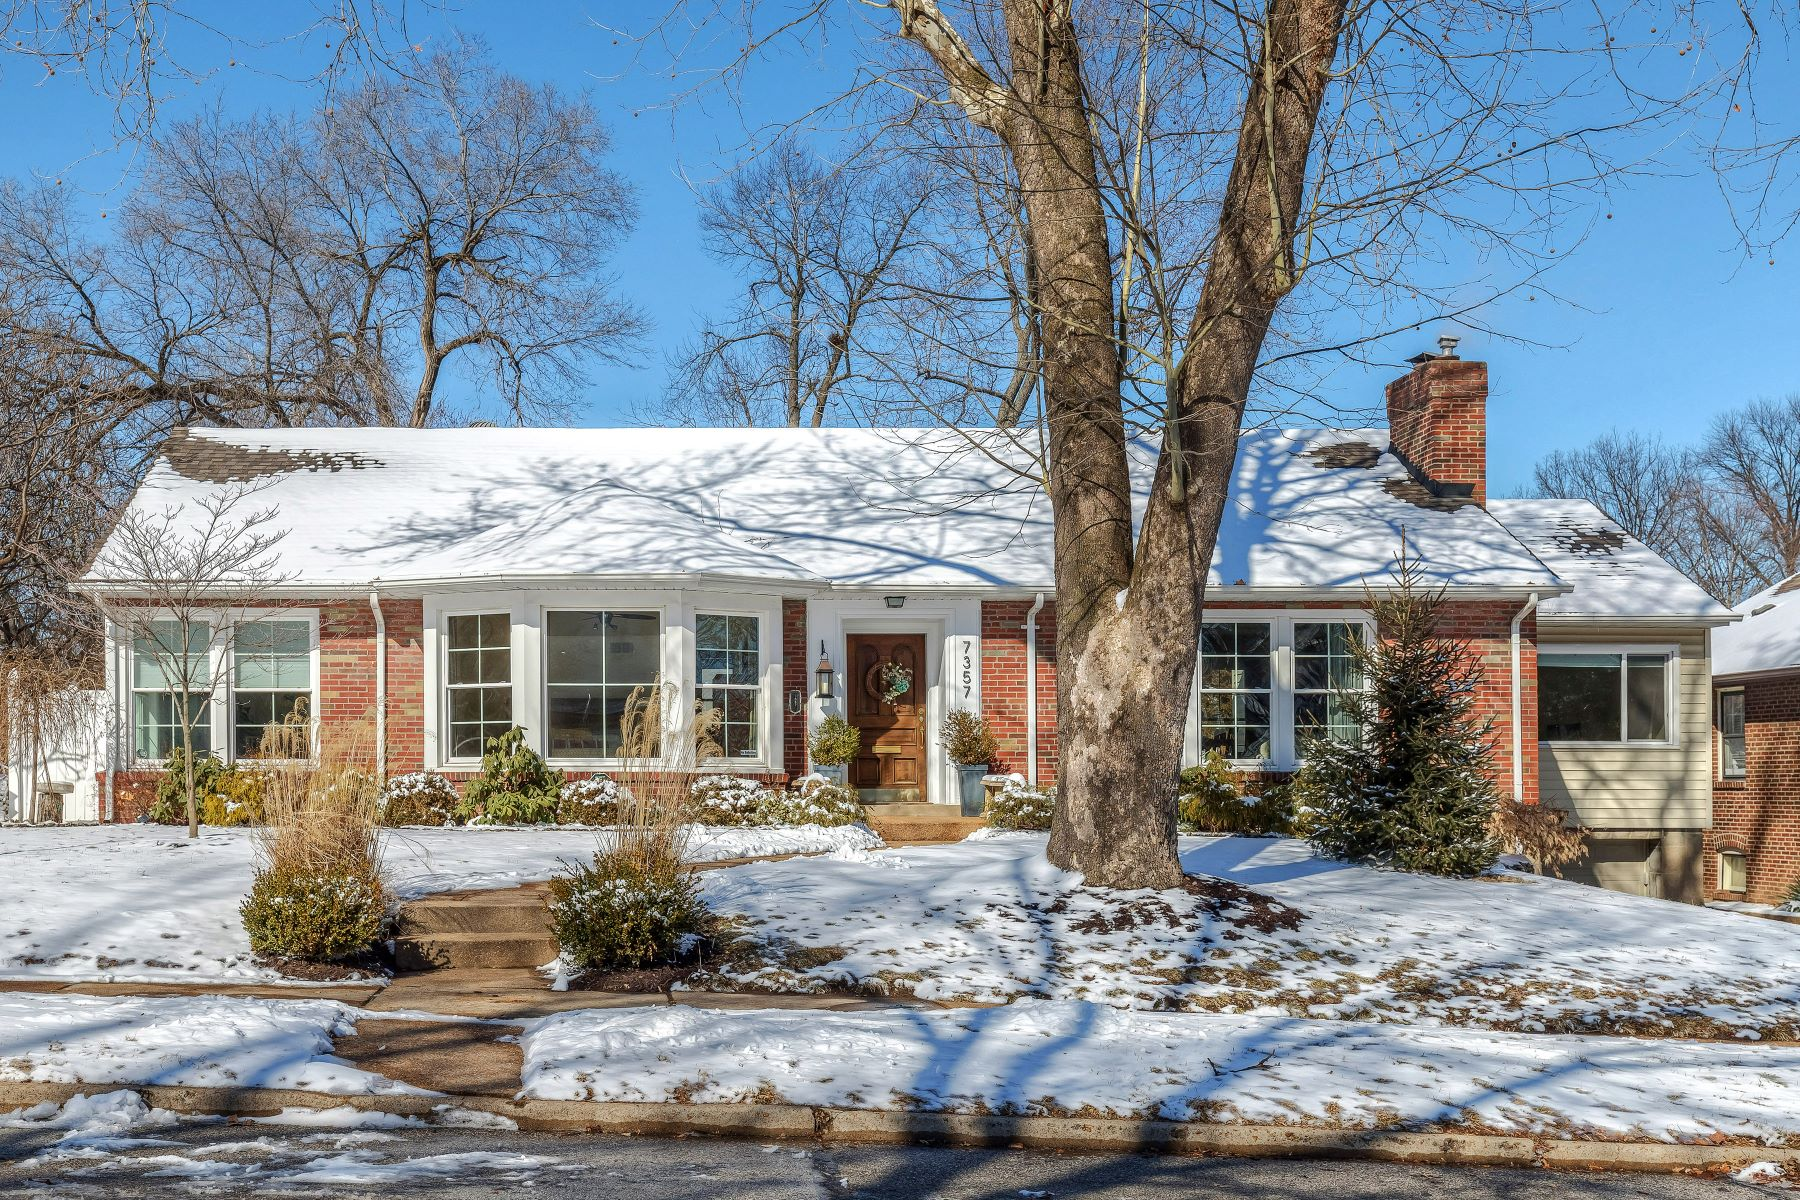 Single Family Home for Sale at 7357 Dorset Avenue, University City, MO 63130 7357 Dorset Avenue University City, Missouri 63130 United States